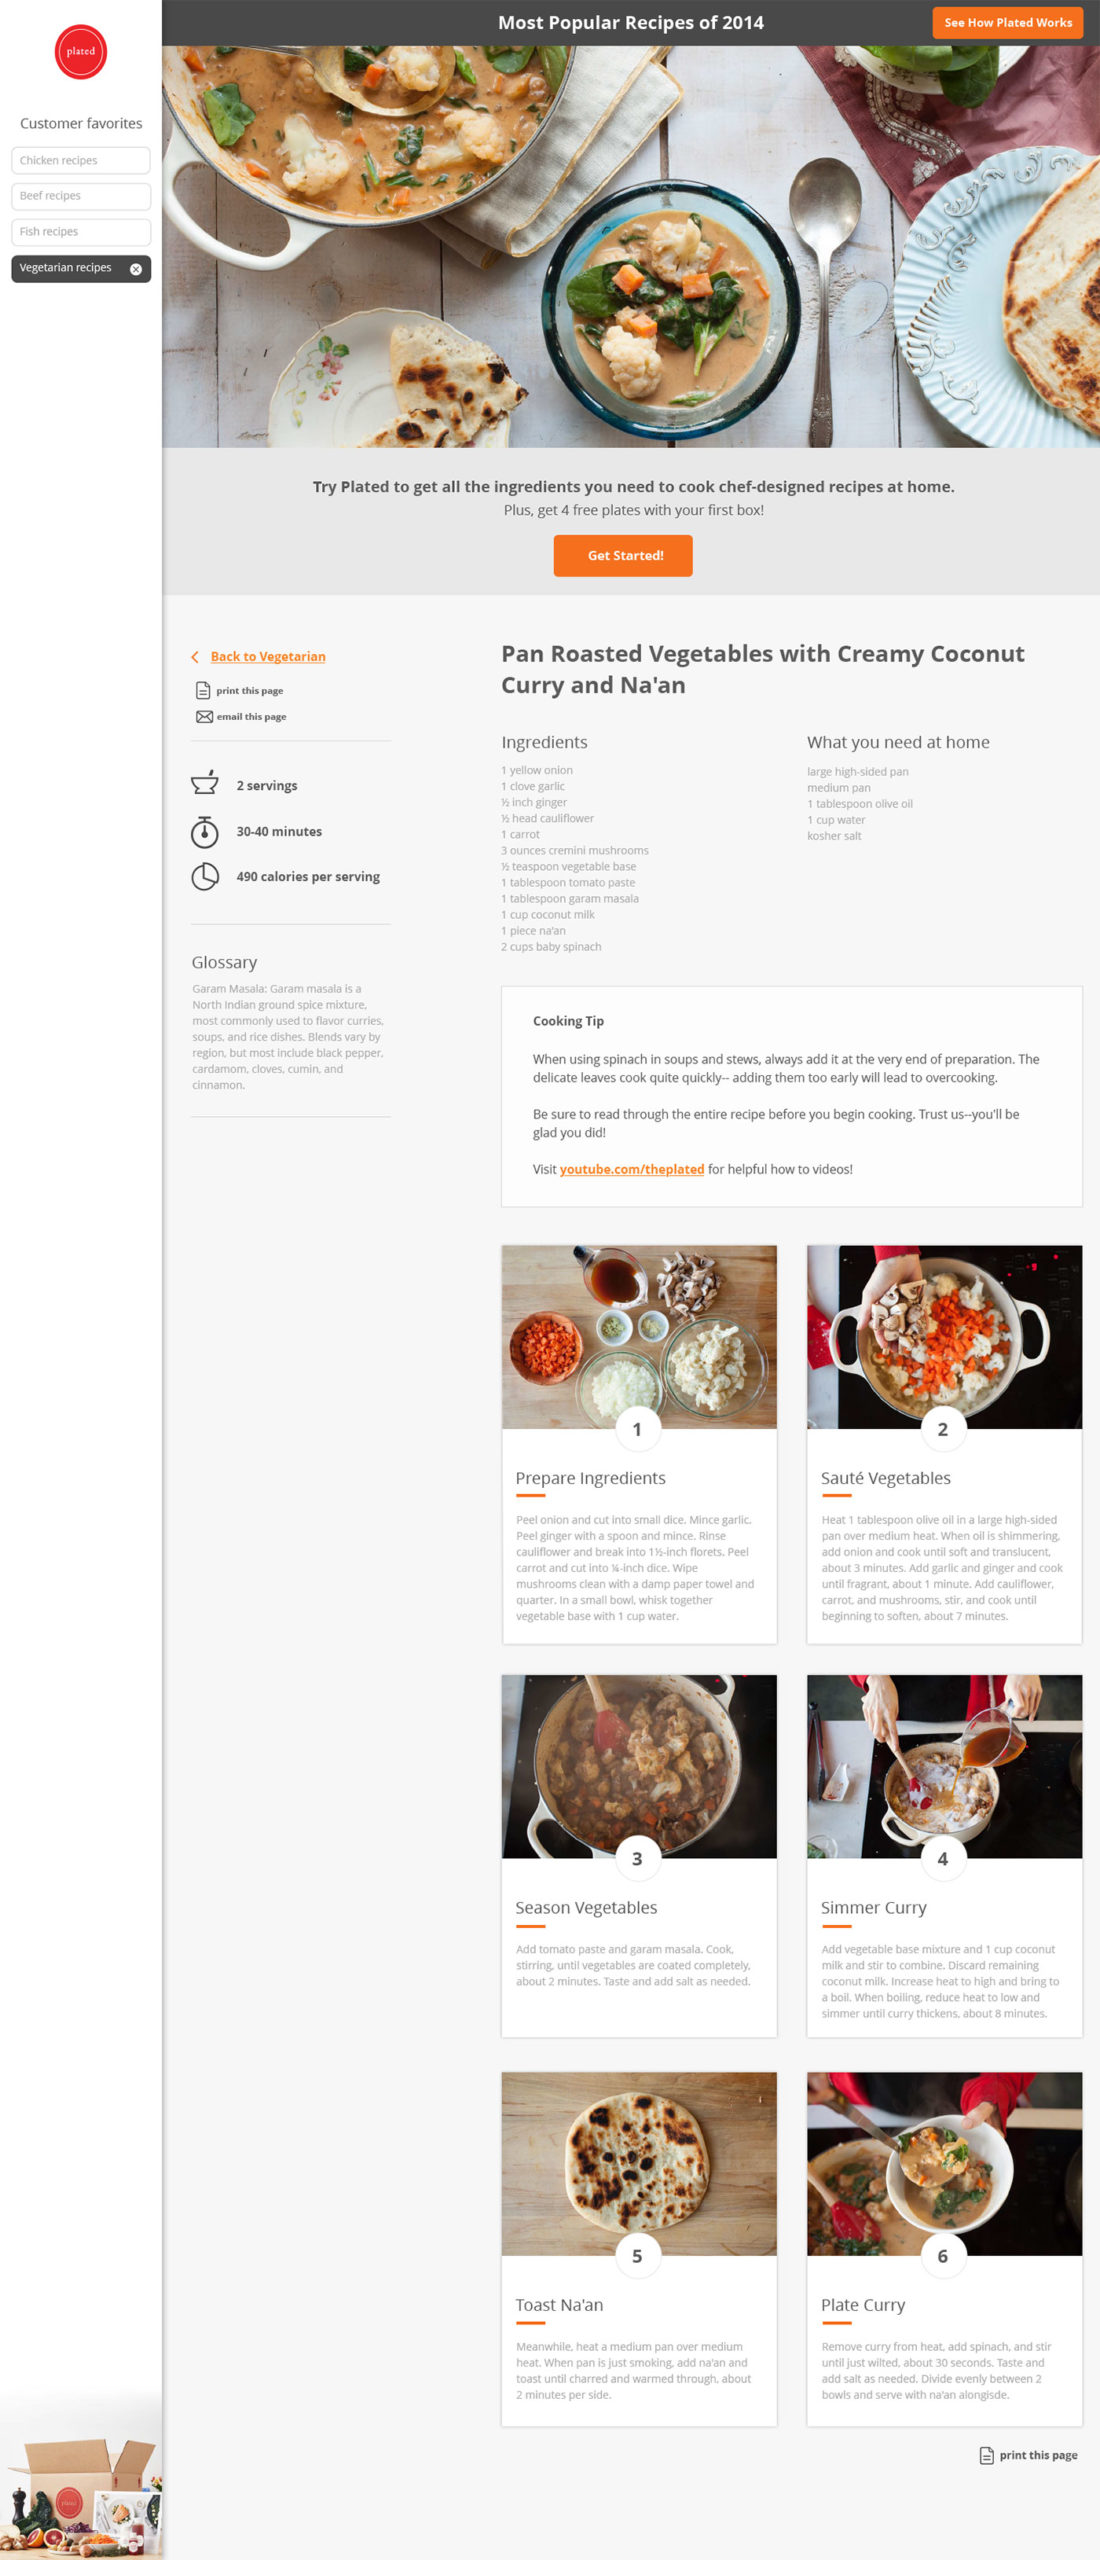 Plated example recipe page